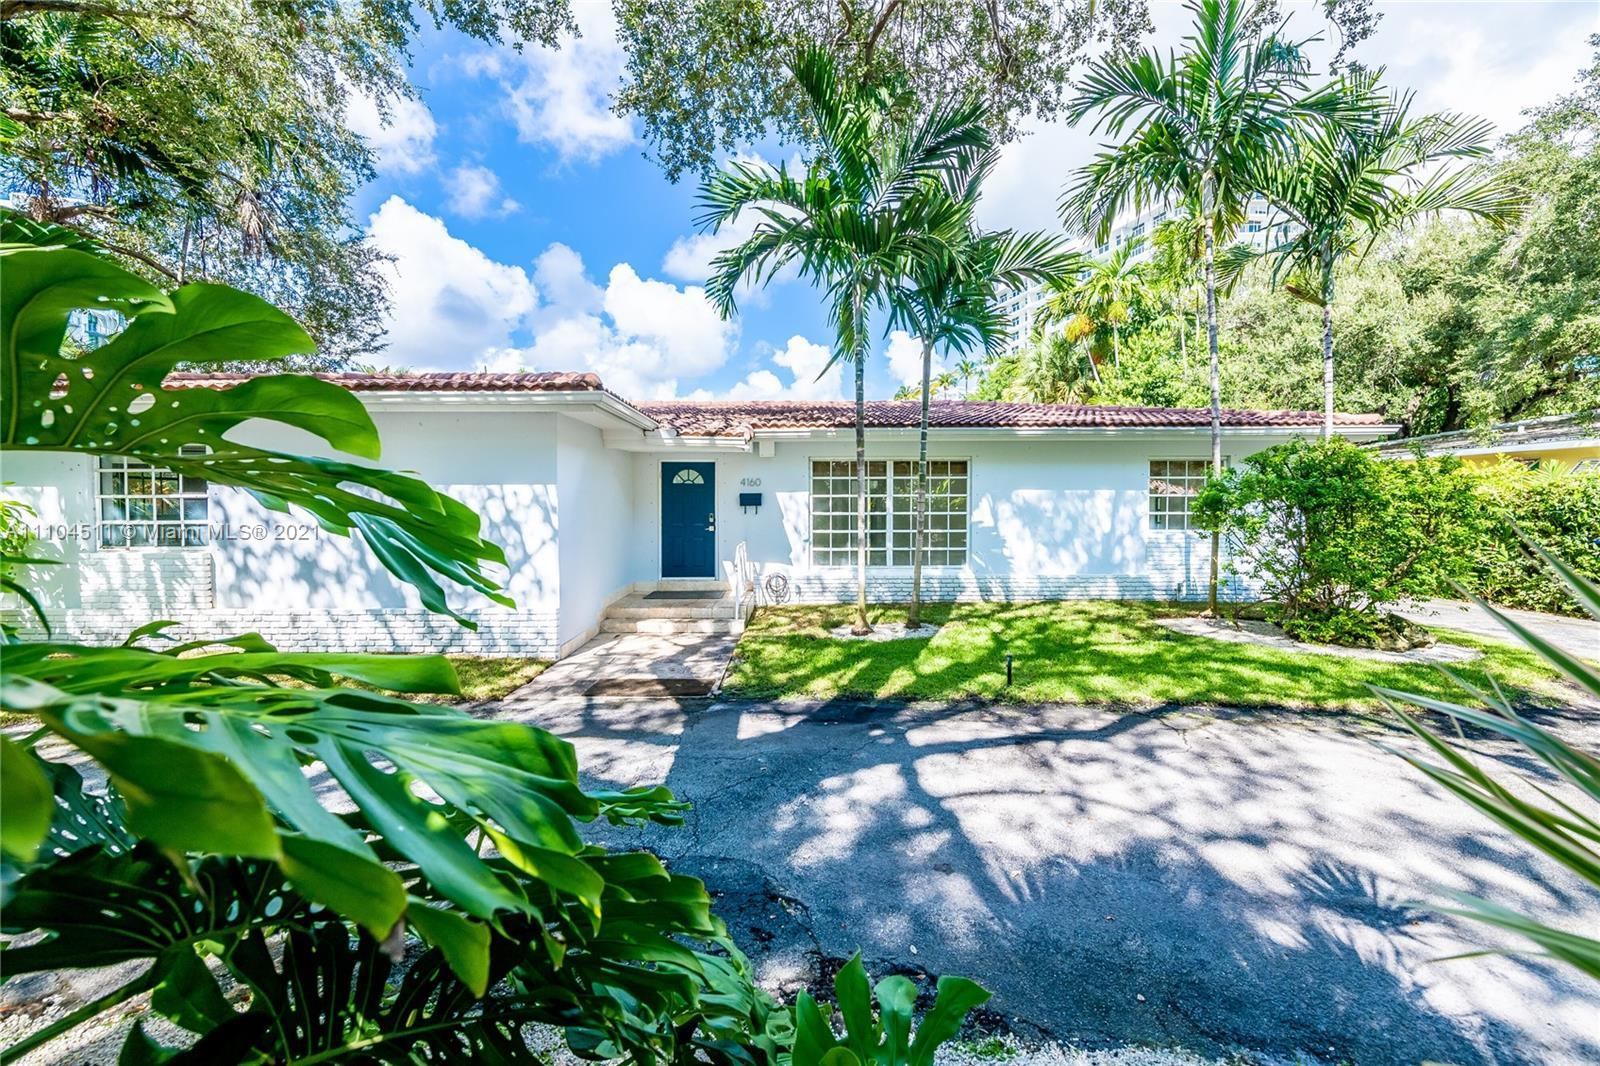 Beautiful single-family home located inside Bay Point Community. This home has 4-bedrooms, 3.5-bathr